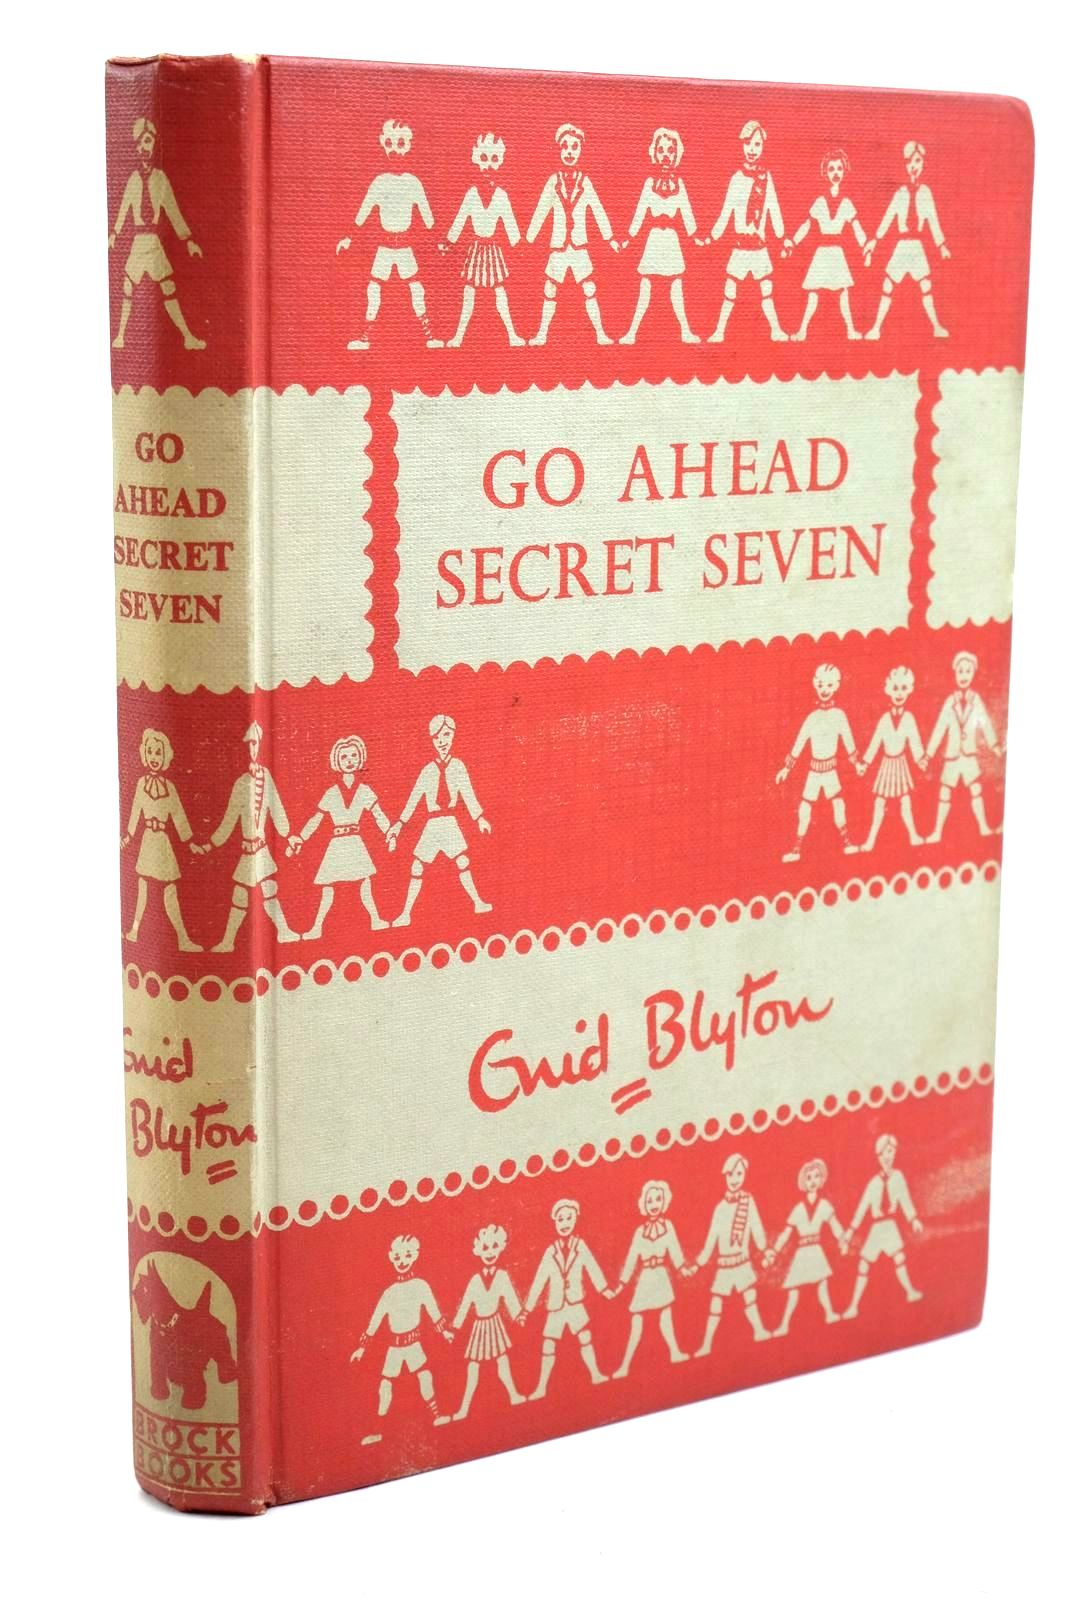 Photo of GO AHEAD SECRET SEVEN written by Blyton, Enid illustrated by Kay, Bruno published by Brockhampton Press Ltd. (STOCK CODE: 1320721)  for sale by Stella & Rose's Books